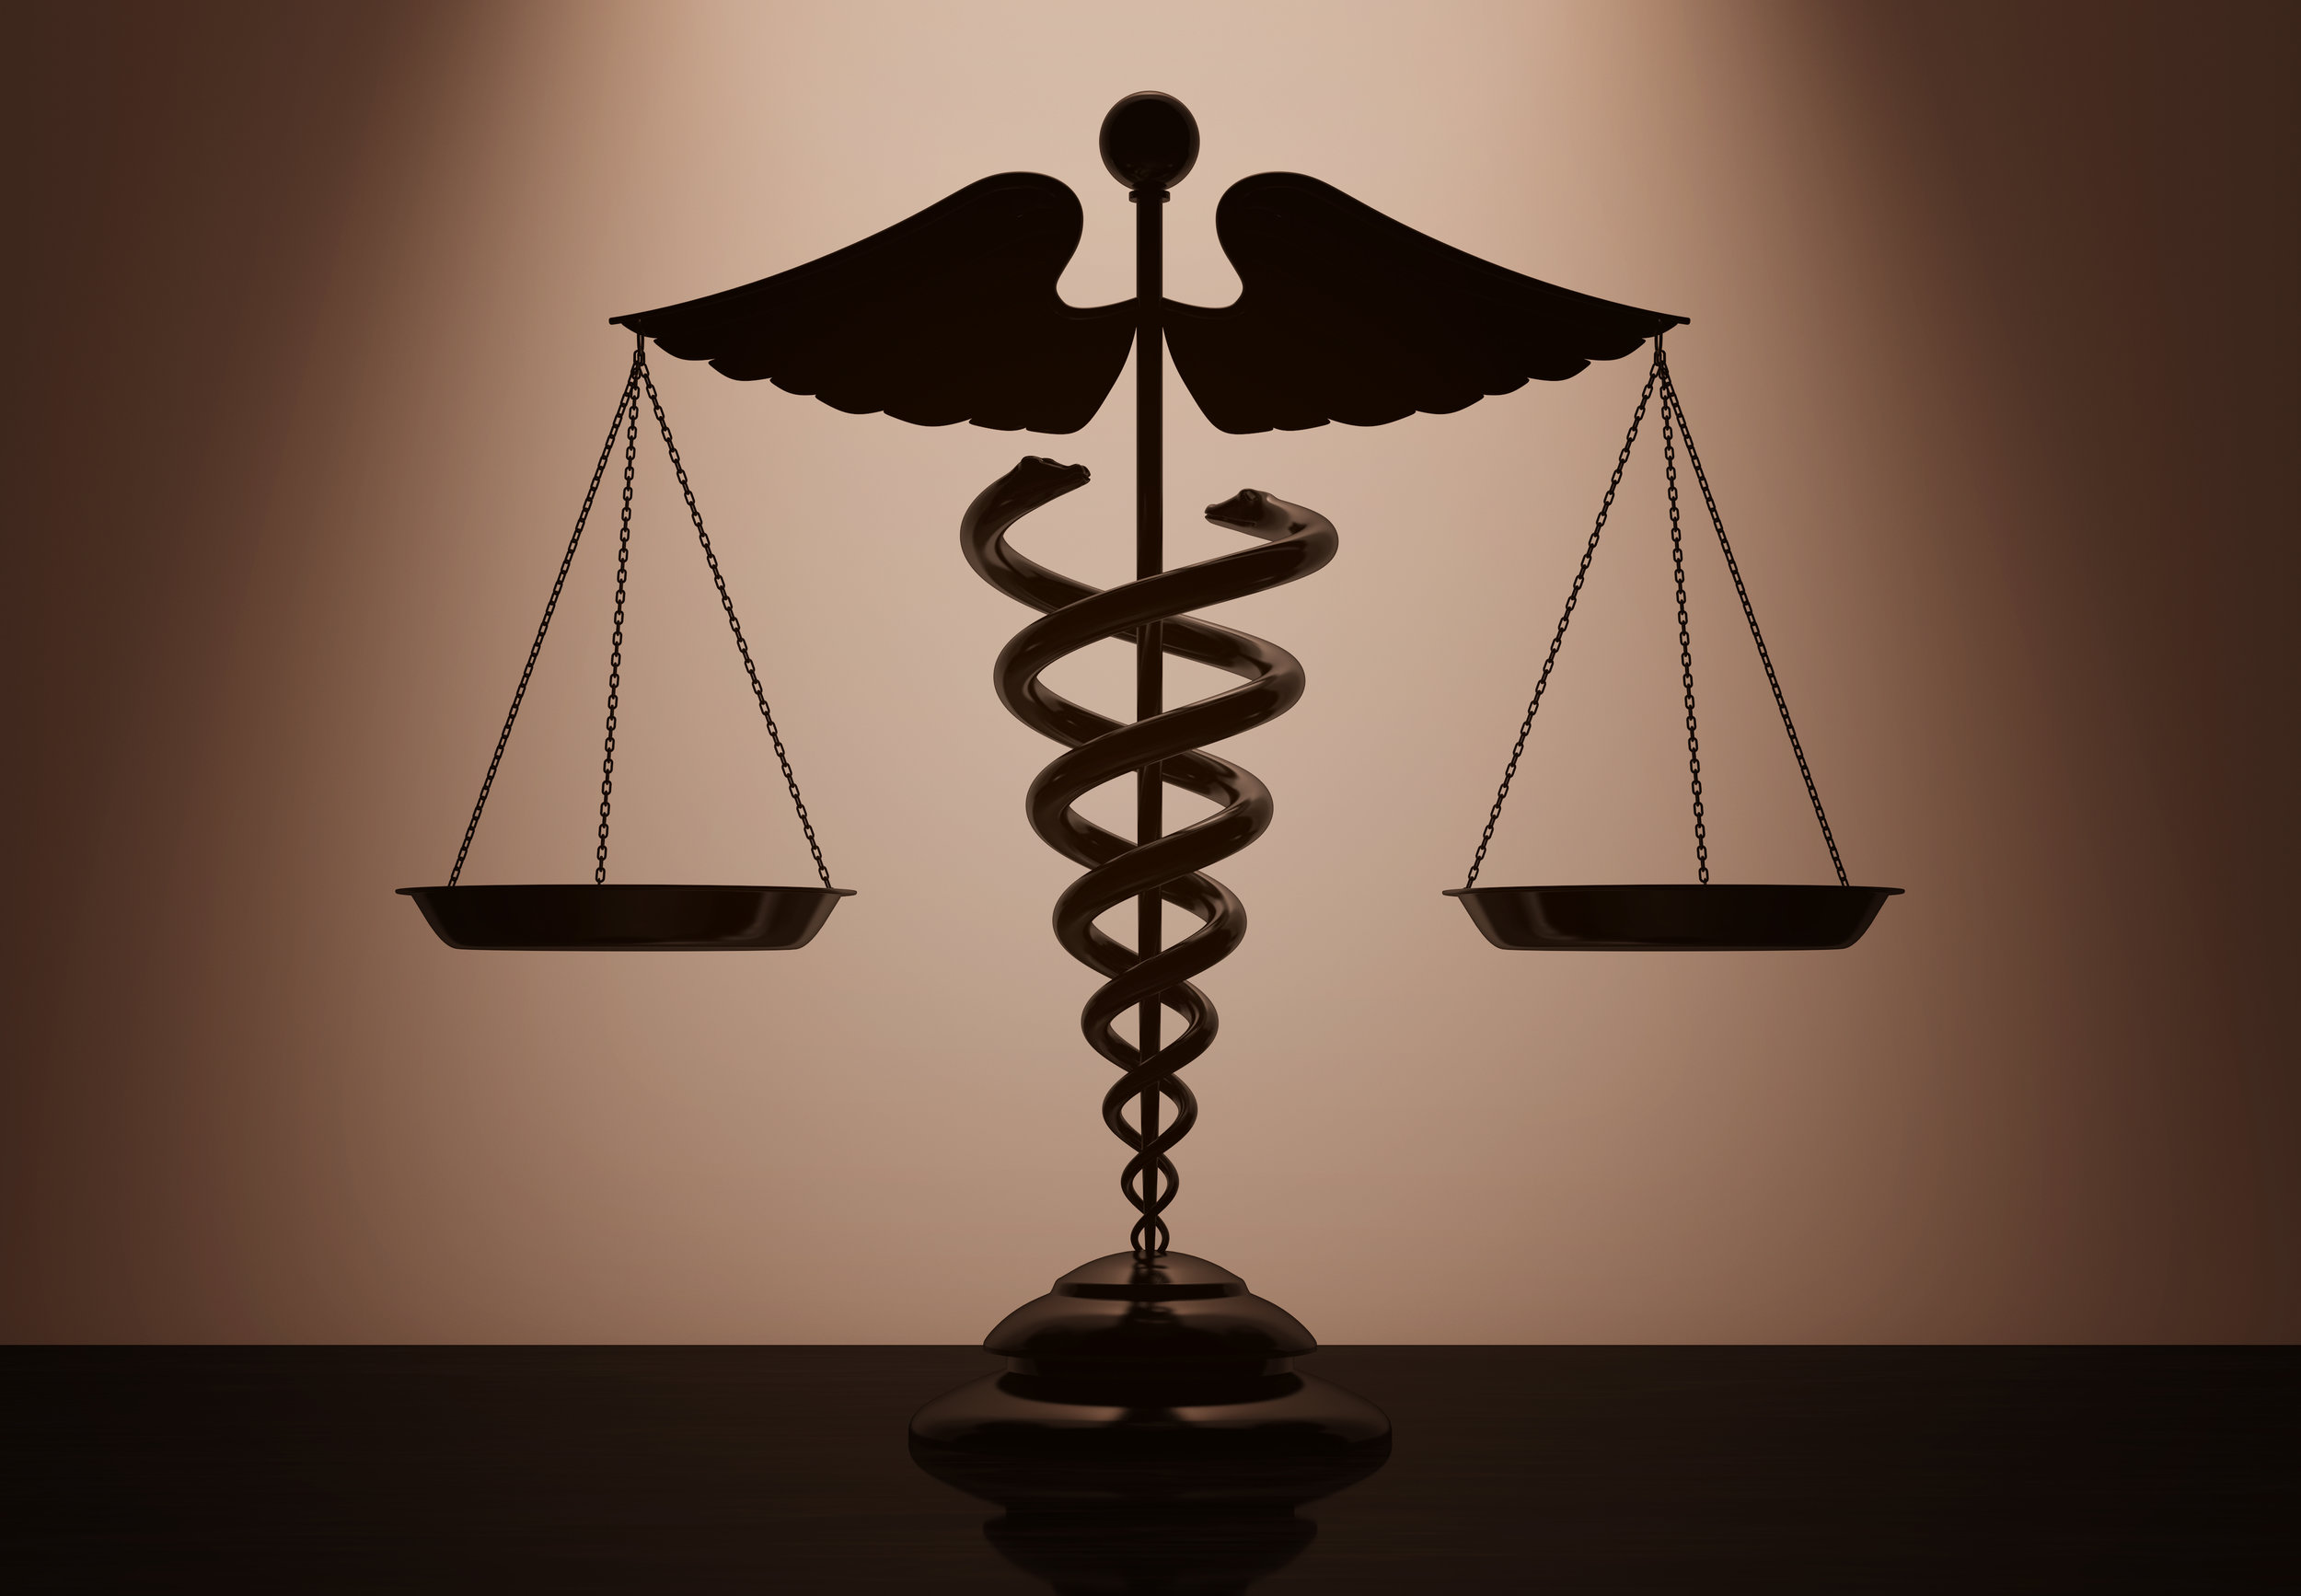 Any attorney? Or a healthcare attorney? -